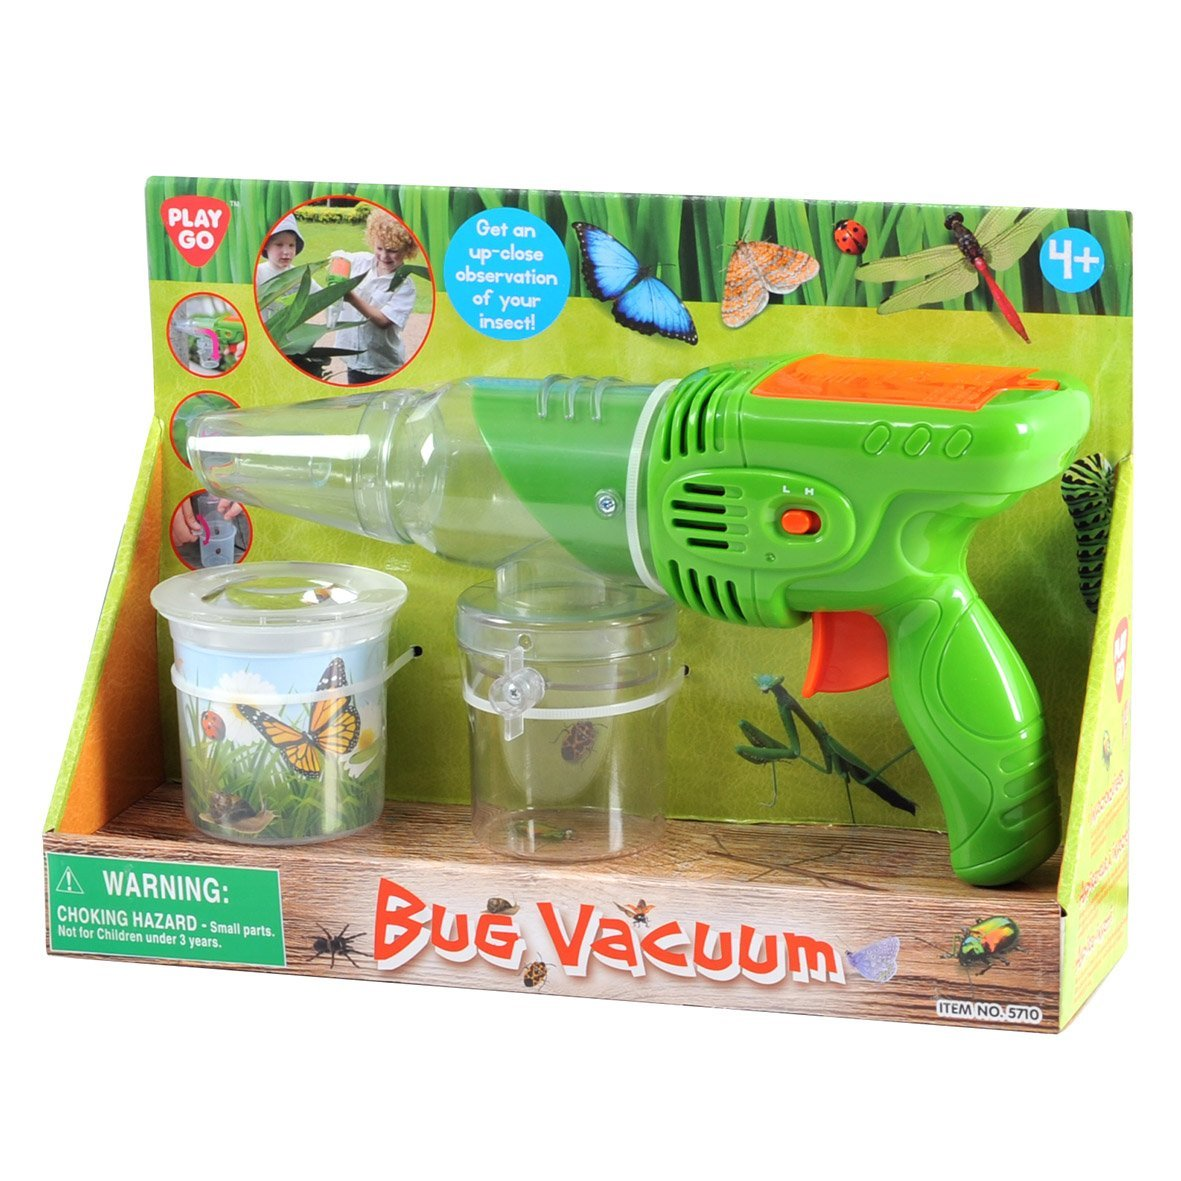 PlayGo Bug Vacuum Science Kit